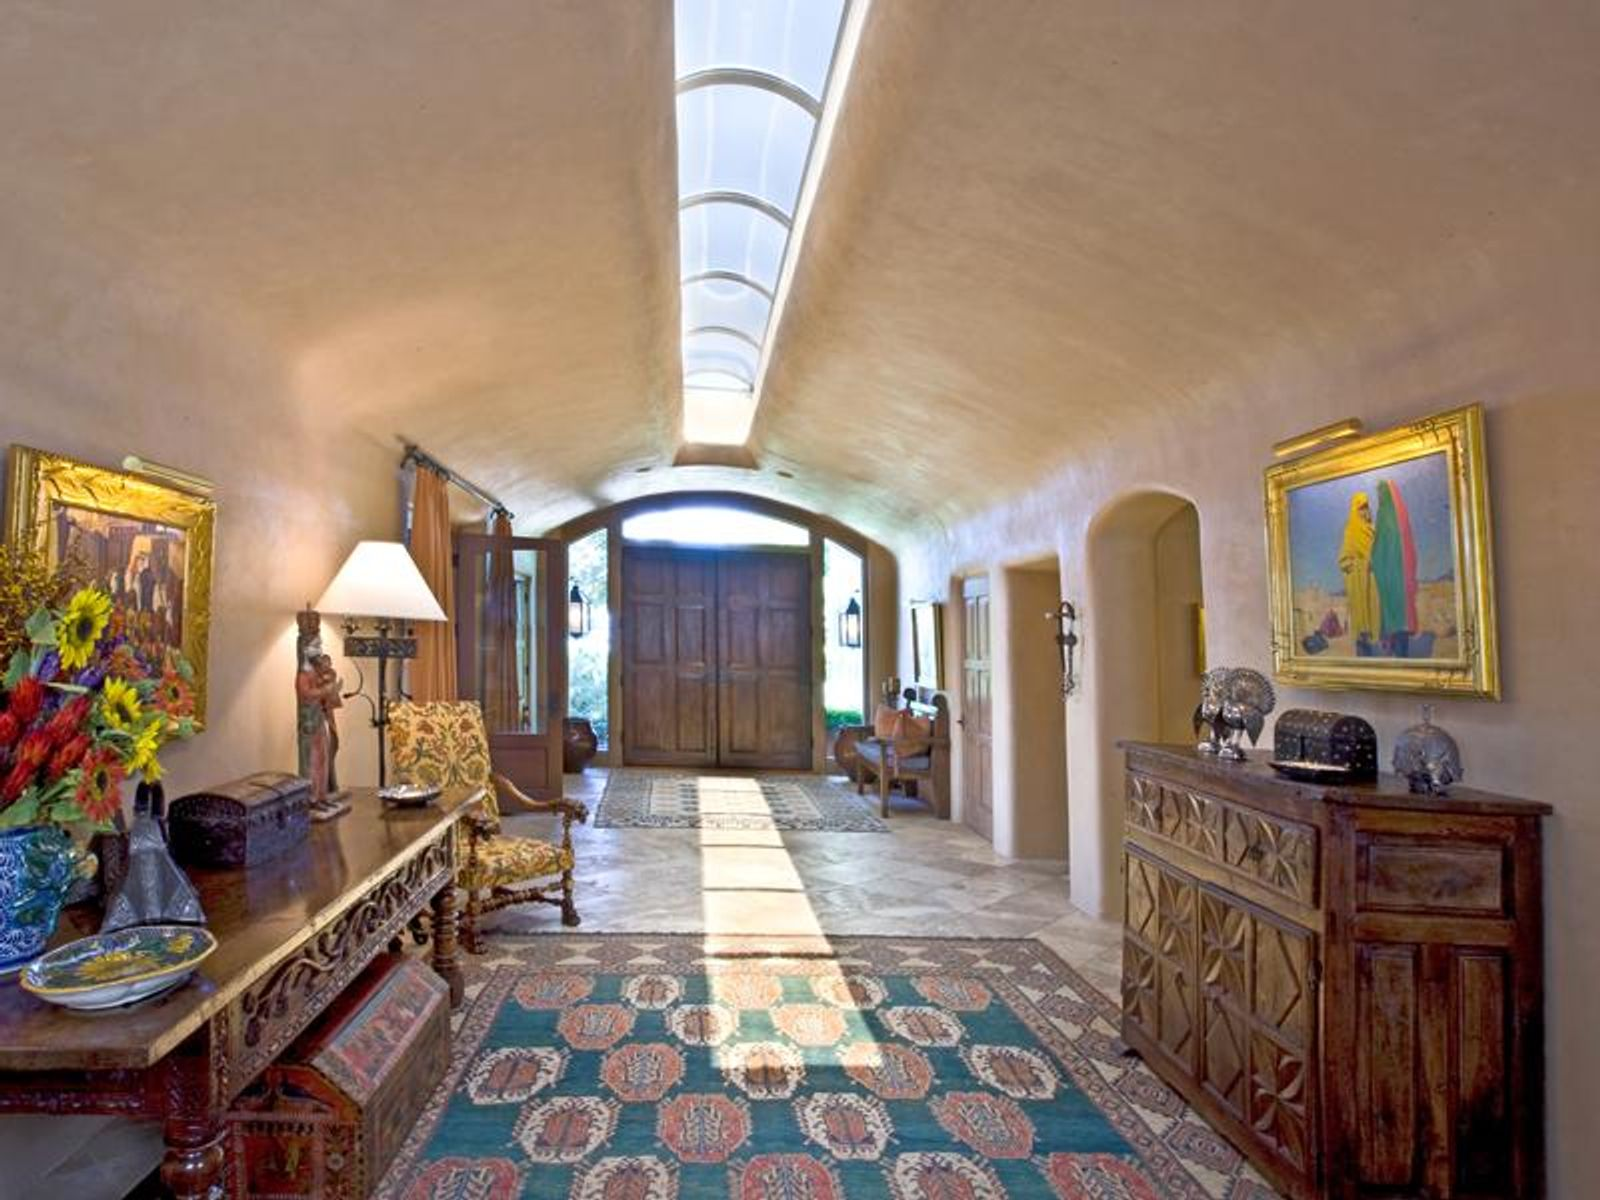 The foyer introduces the relaxed grandeur ...